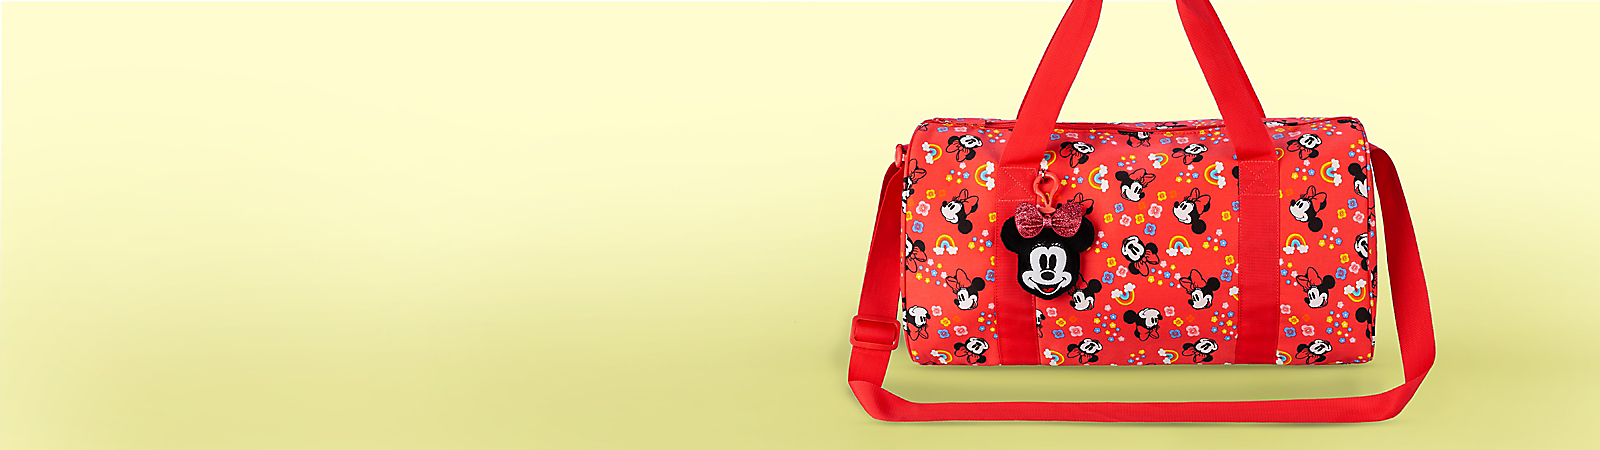 Kids' Bags & Wallets